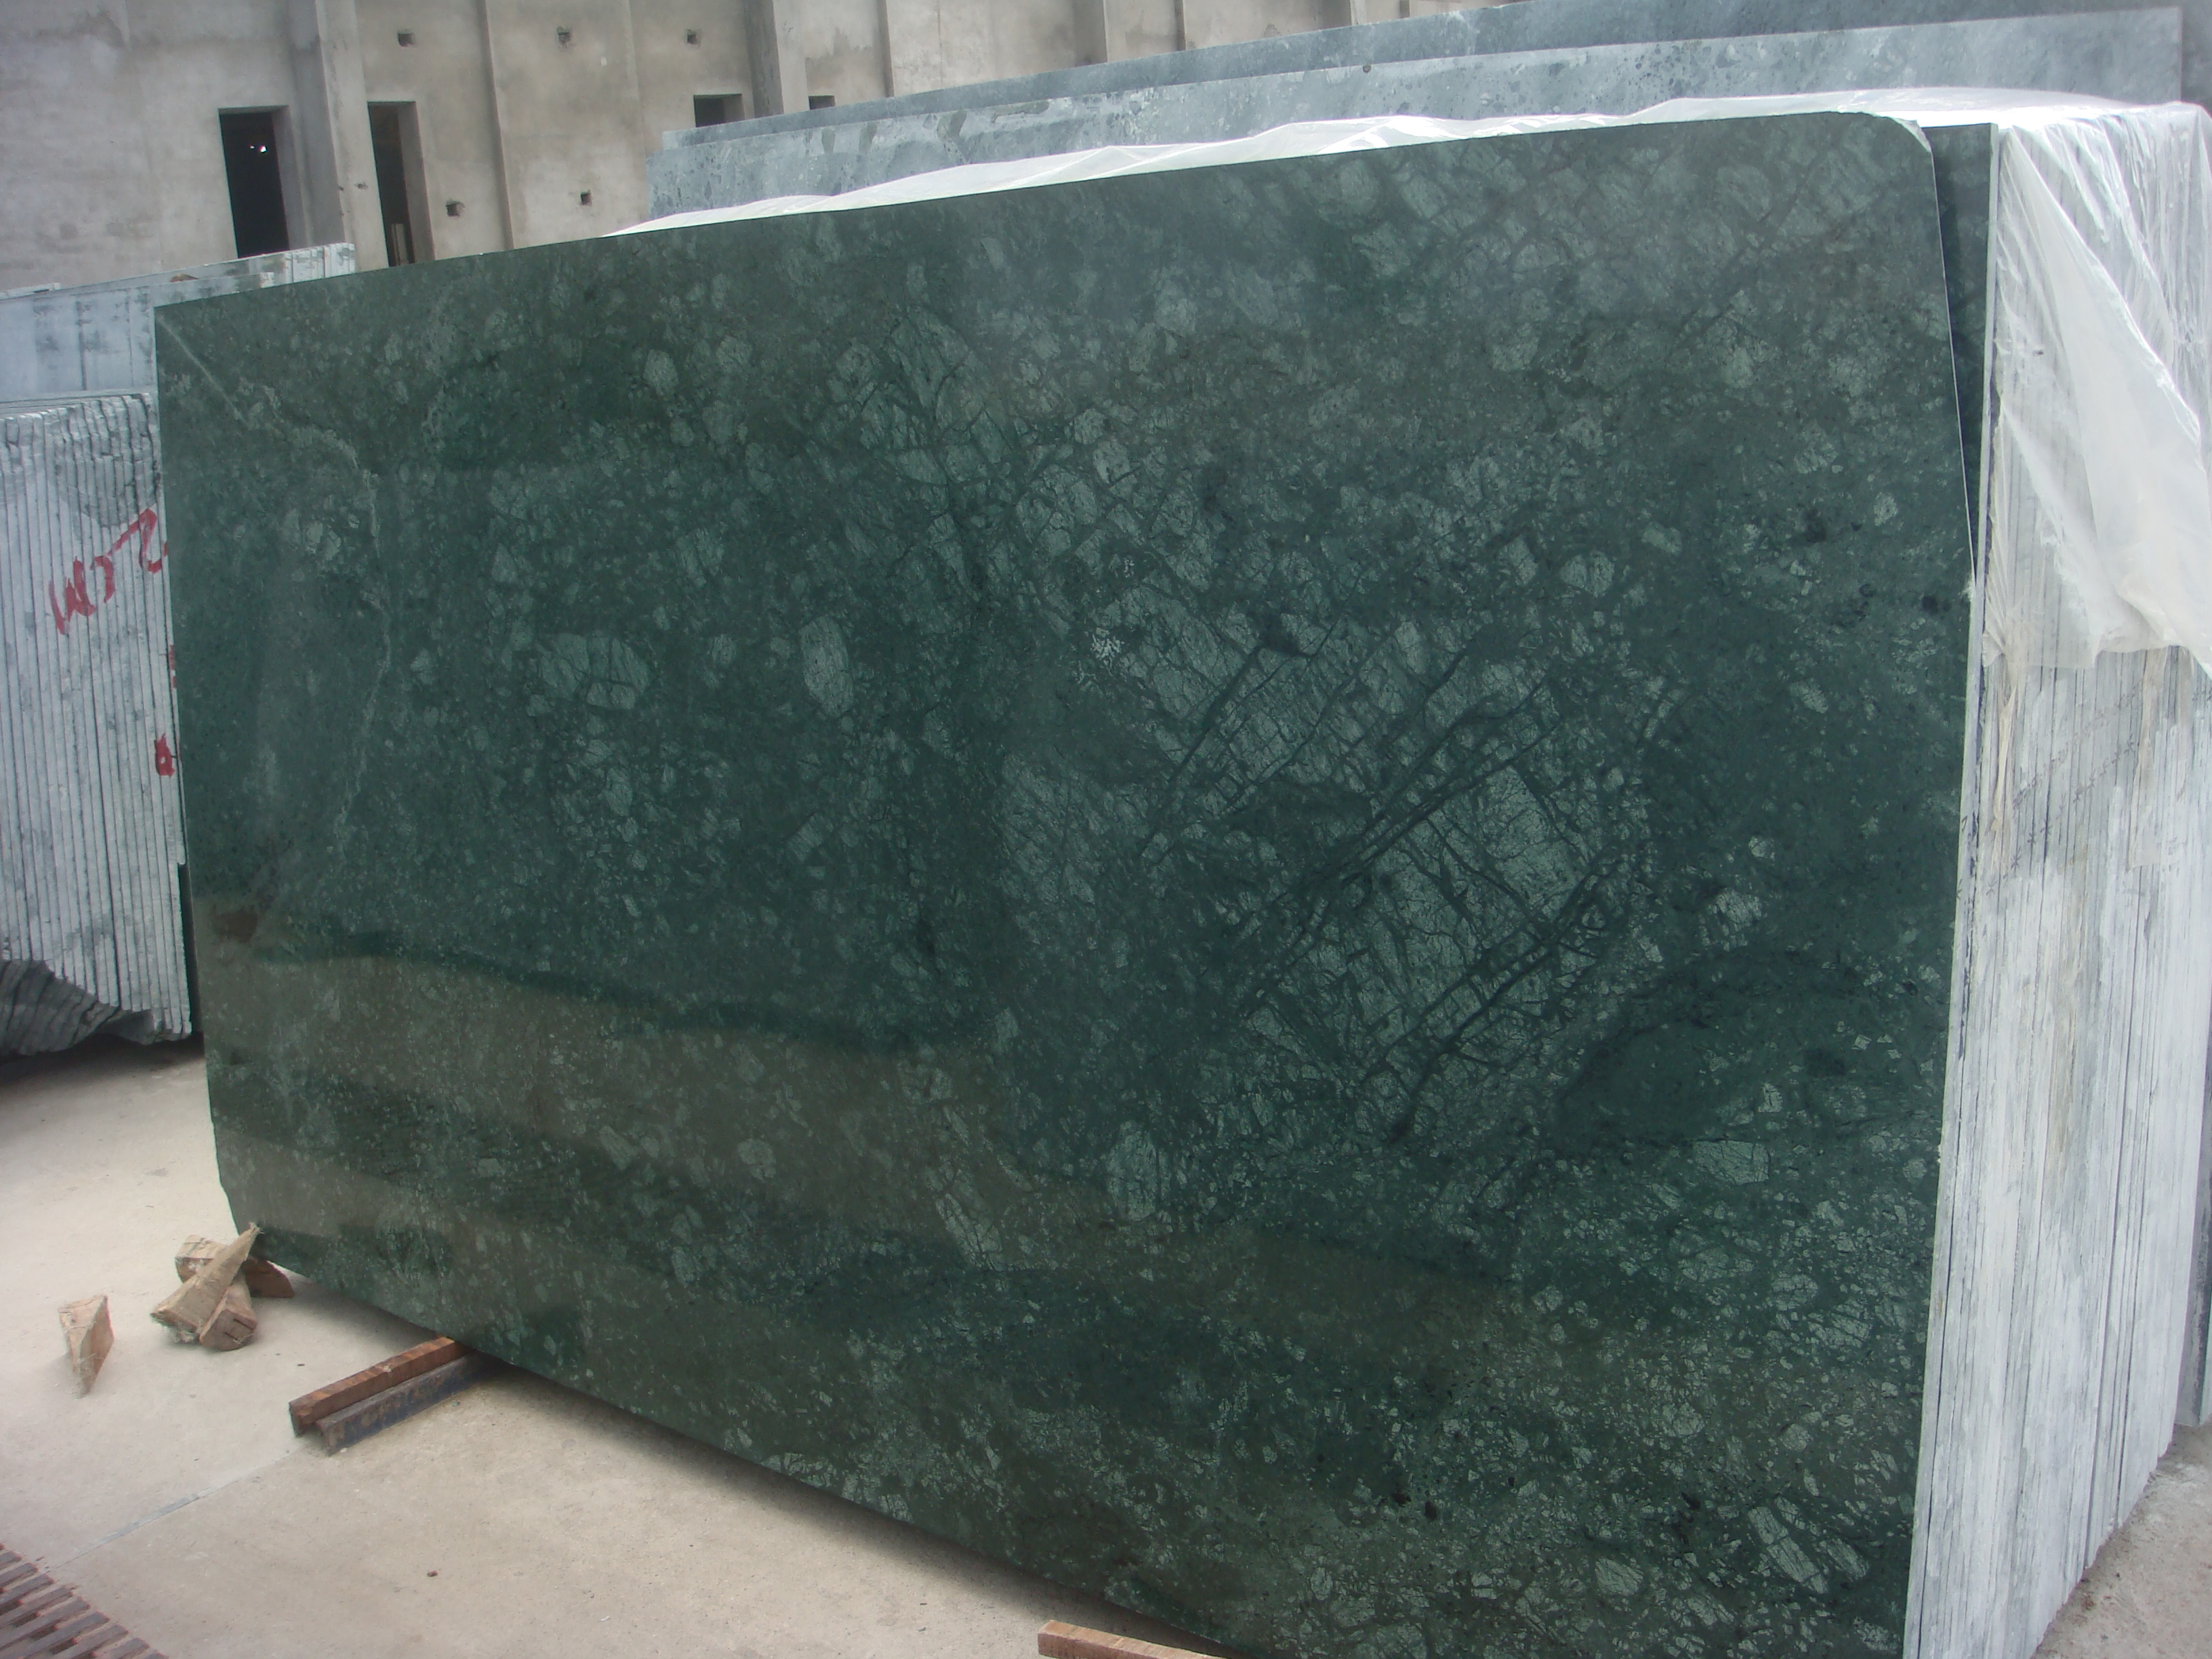 Green marble green marble udaipur green marble tiles slabs published september 5 2012 at 3264 2448 in natural green mable for flooring dailygadgetfo Choice Image